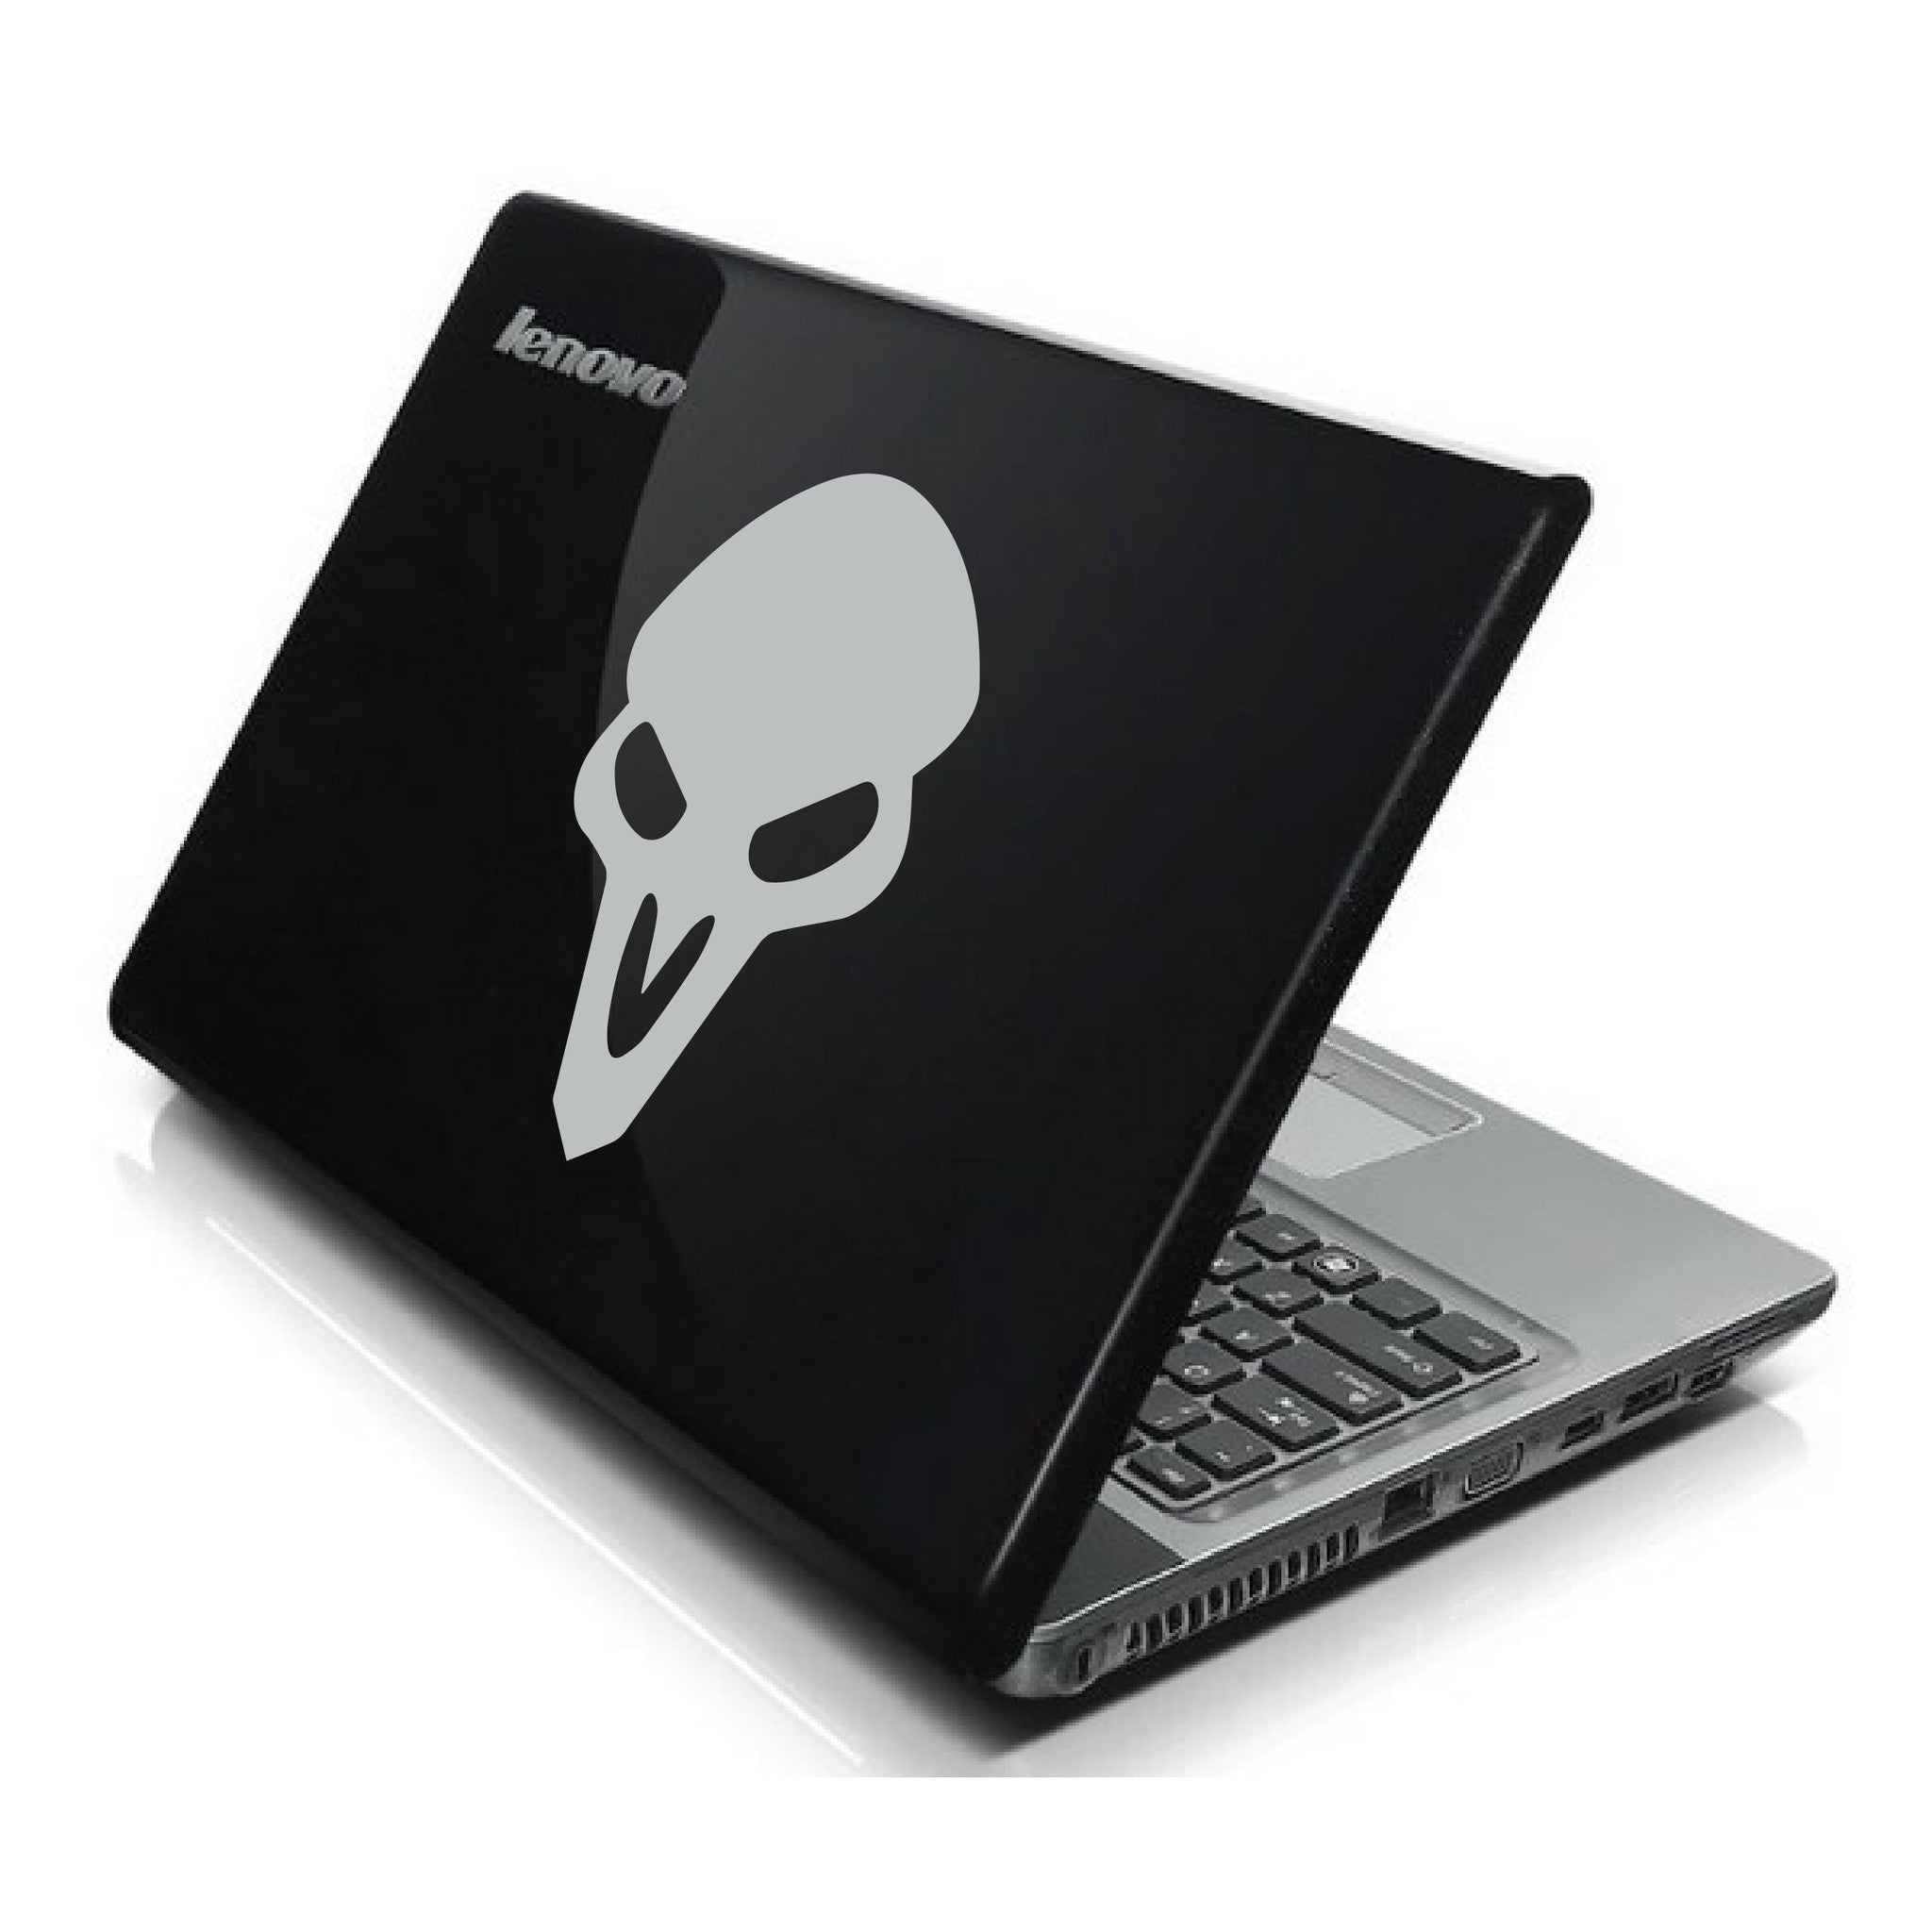 Reaper Skull Overwatch Computer Game Bumper/Phone/Laptop Sticker - Apex Stickers